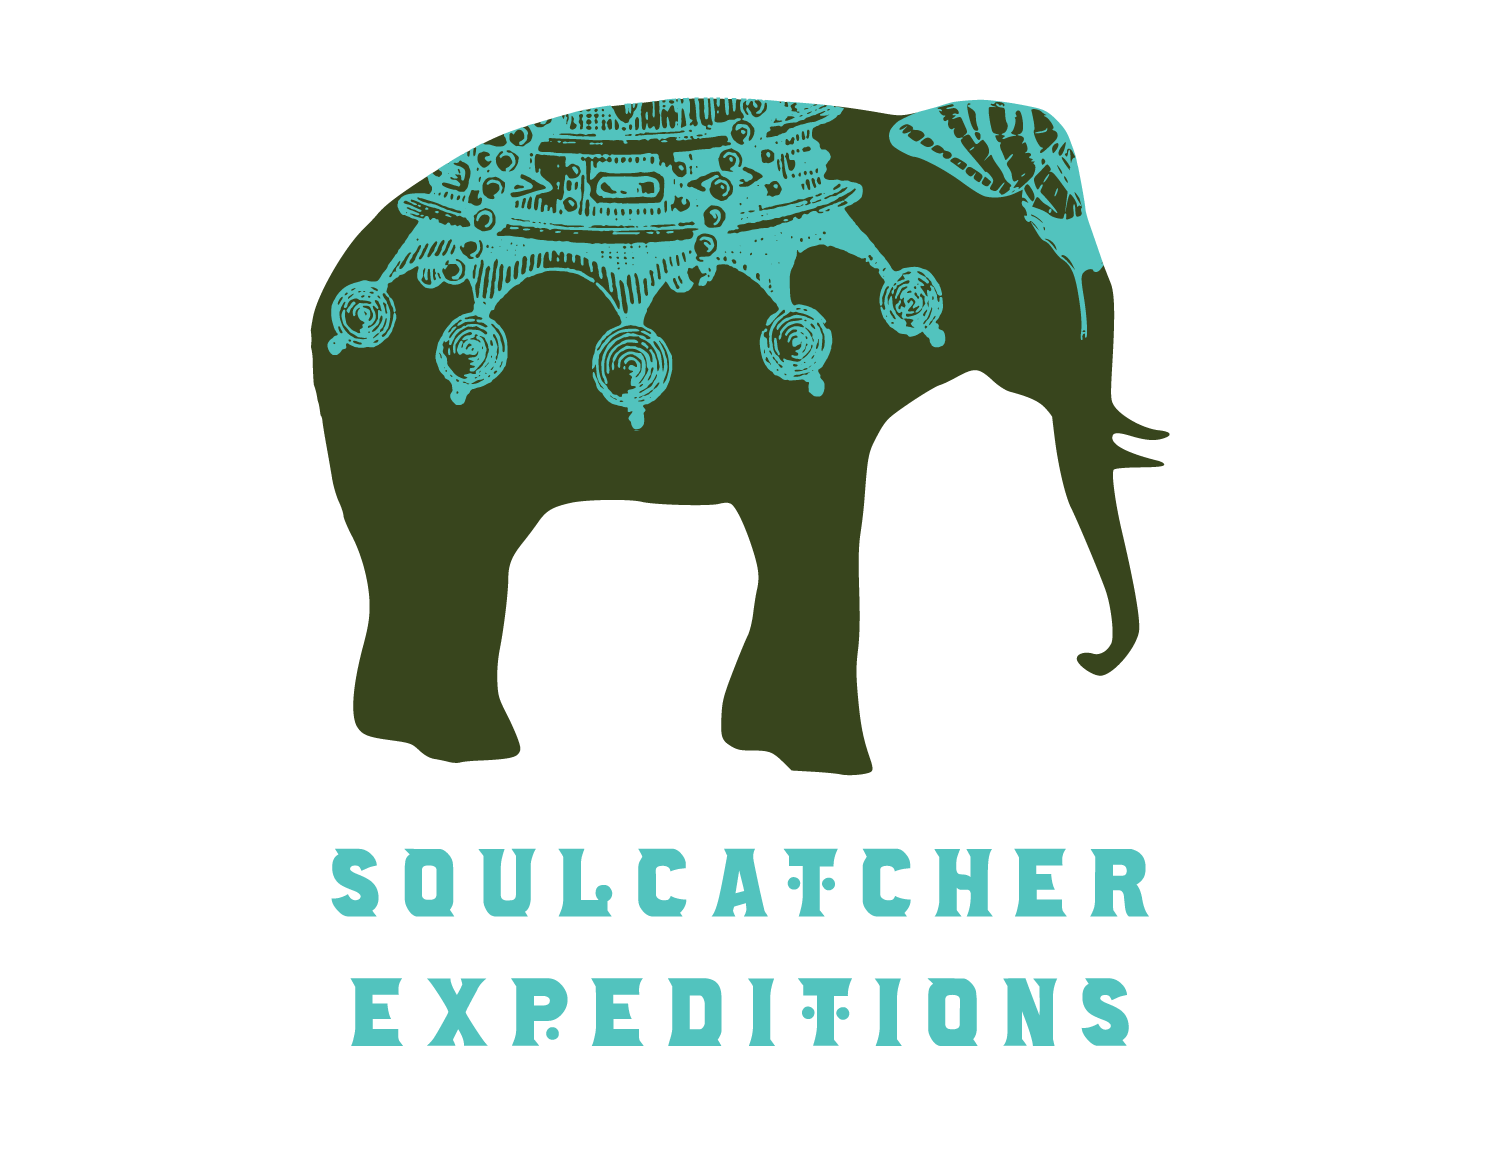 Soulcatcher ™